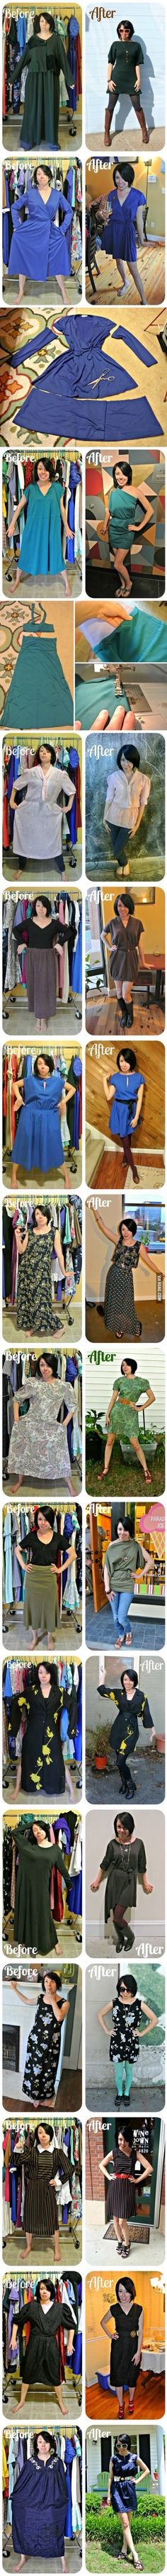 Second-Hand Clothes Have Never Fit Better. Or Looked Quite So Fashionable...